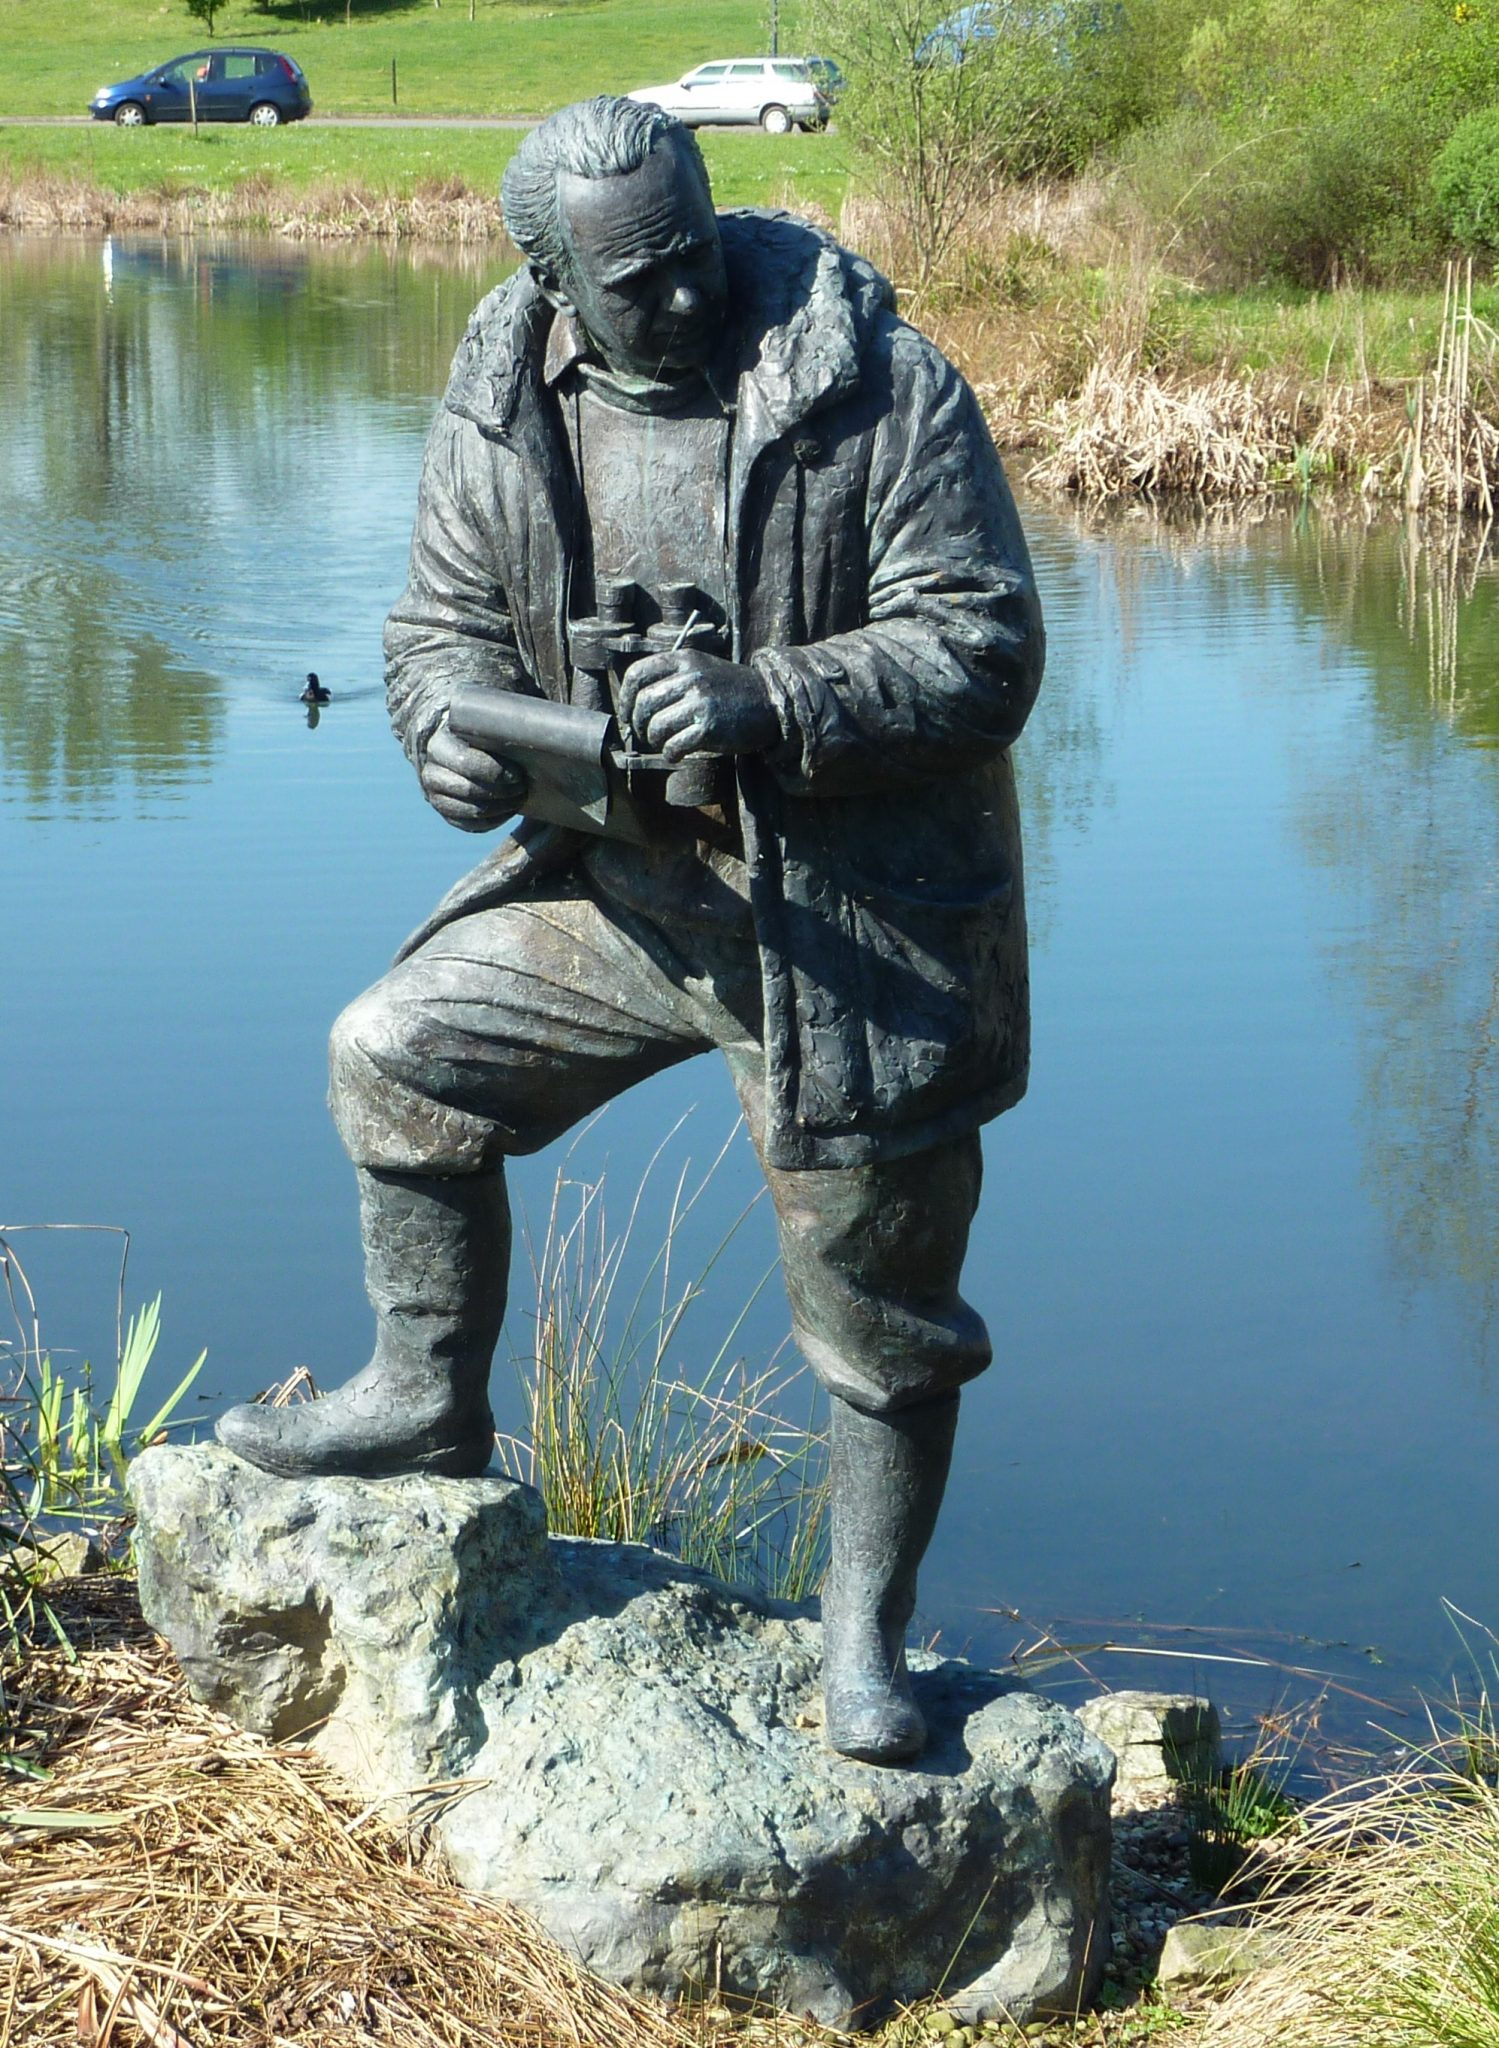 Bronze sculpture at Wildfowl and Wetlands Center Barnes London